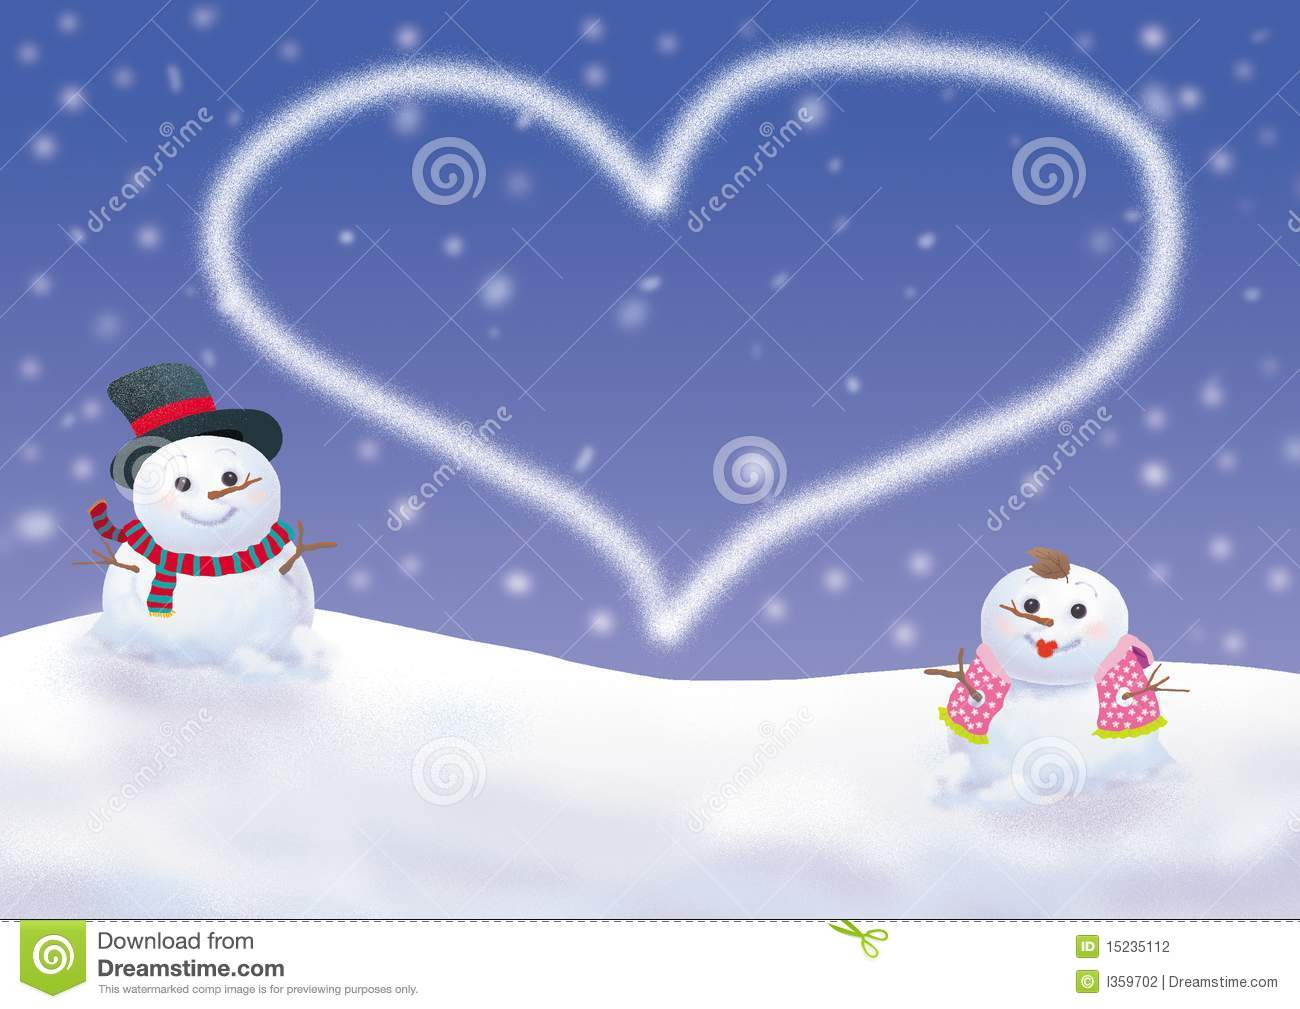 Free Animated Snow Falling Wallpaper Winter Background With Snowman Stock Illustration Image